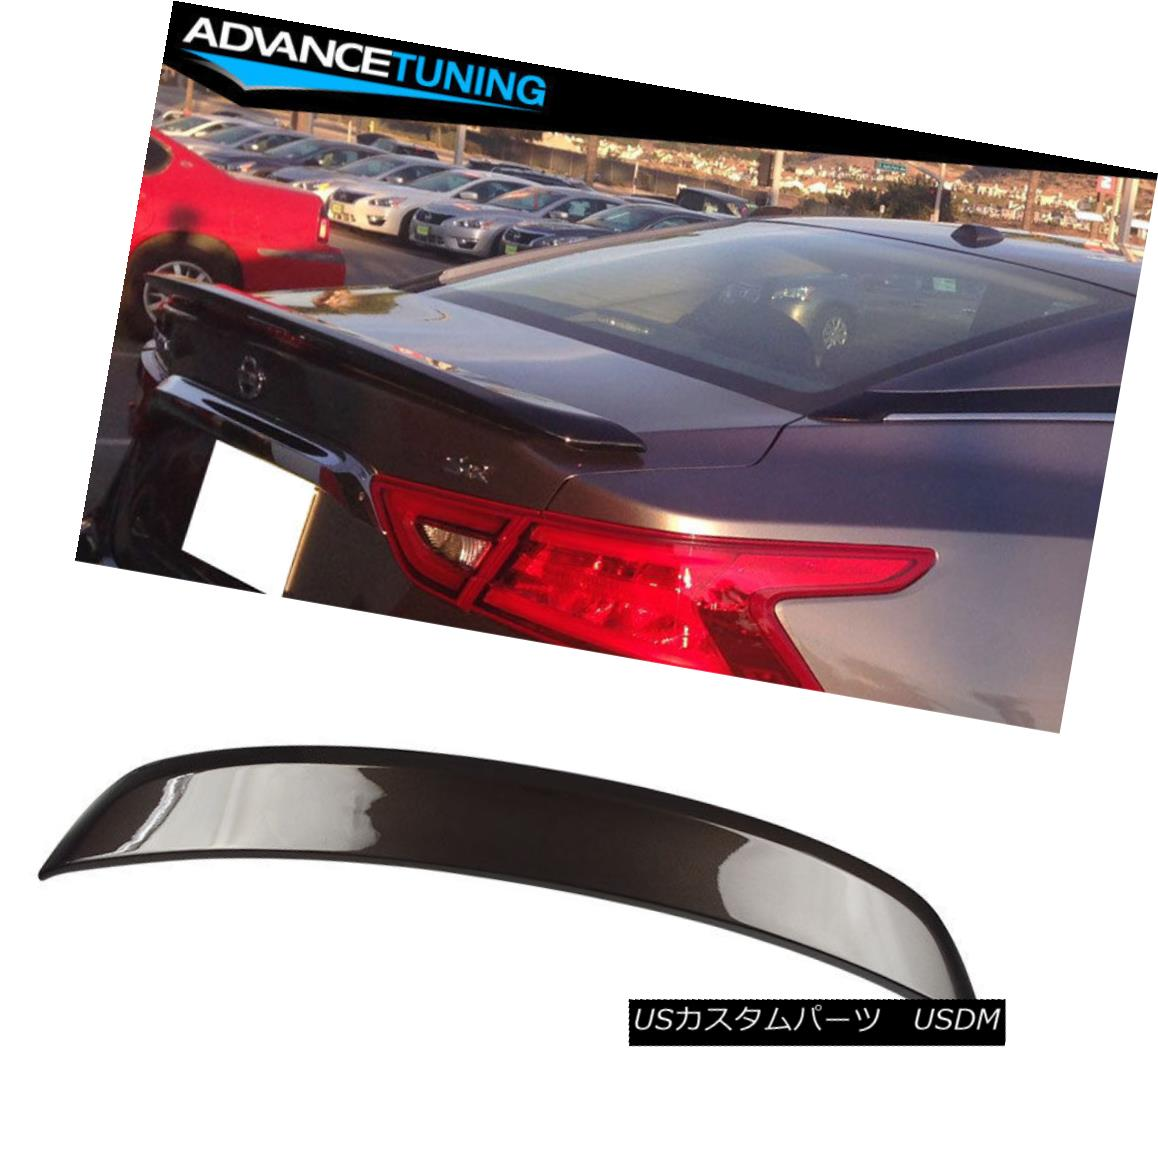 エアロパーツ Fits 16-18 Maxima OE2 Trunk Spoiler OEM Painted Color Forqed Bronze Metallic#CAT フィット16-18マキシマOE2トランク・スポイラーOEM塗装カラーForqed Bronze Metallic#CAT